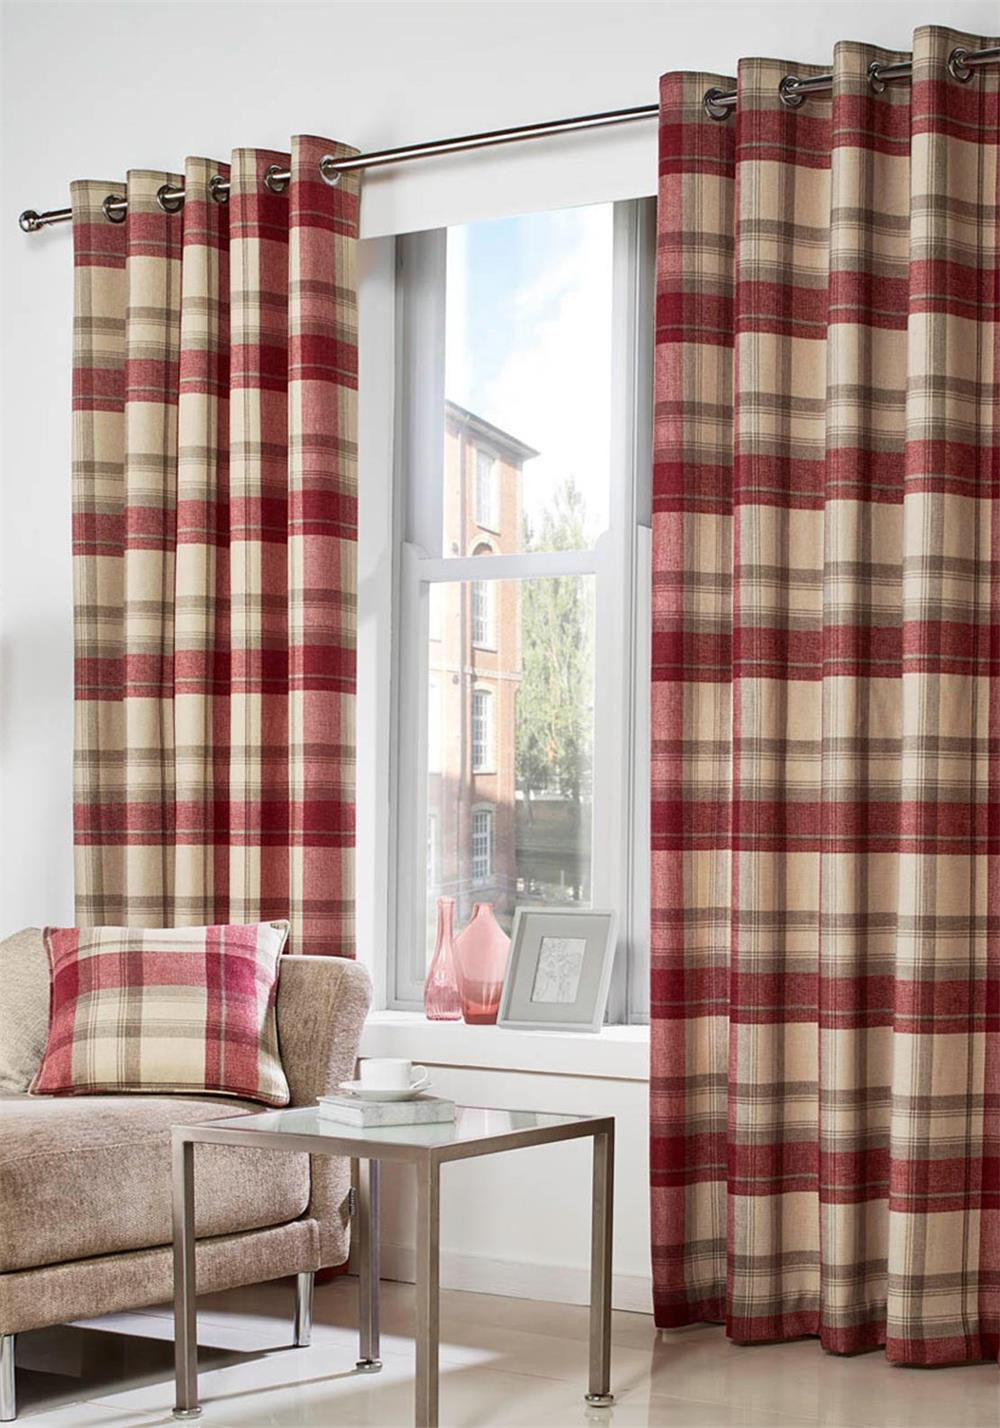 Curtina Belvedere Readymade Luxury Eyelet Curtains Fully Lined, Red Check